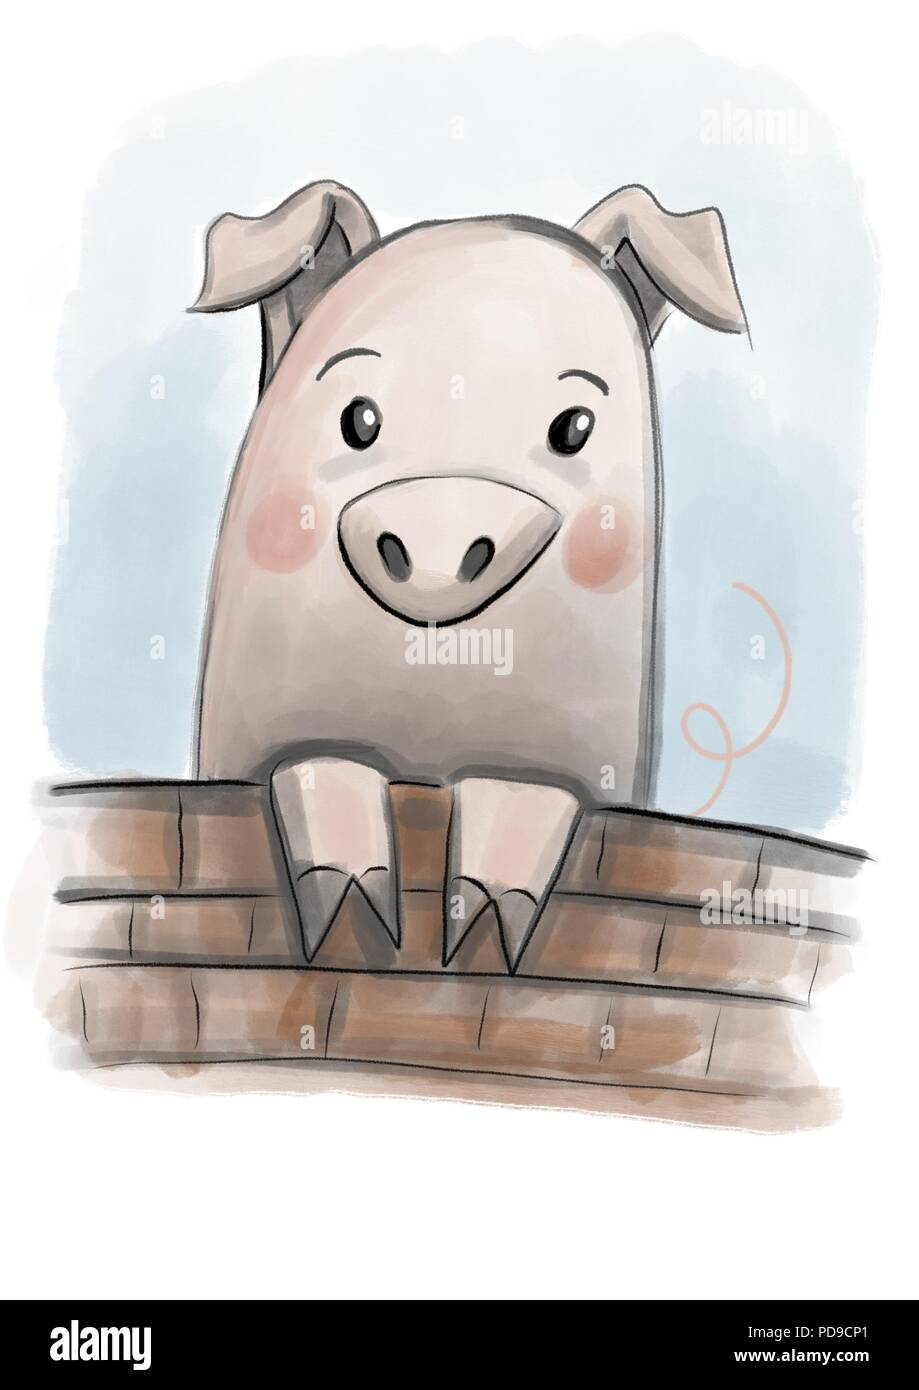 a pink pig peering over a wall - Stock Image